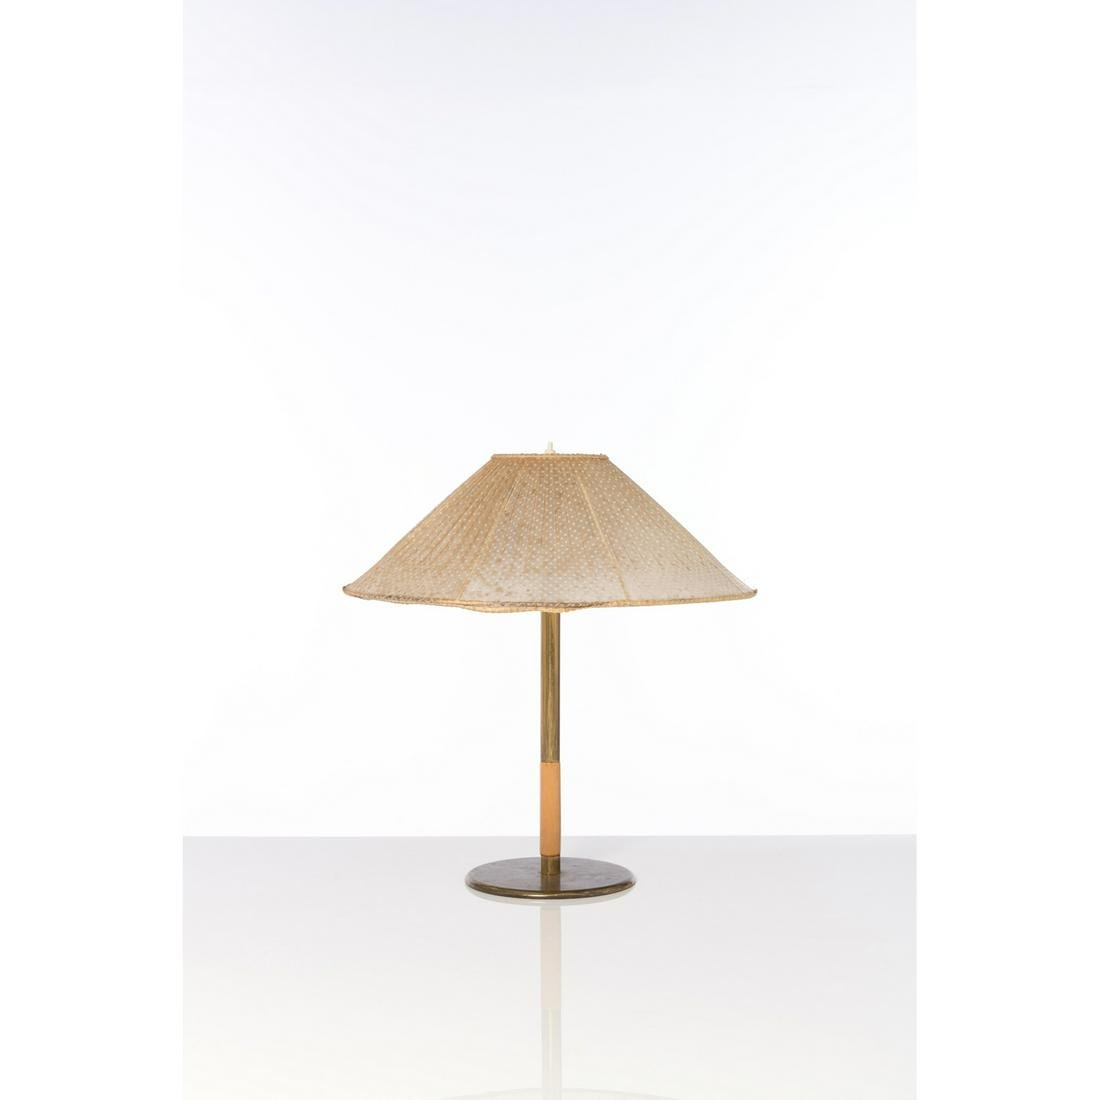 Paavo Tynell (1890-1973) Model no. 5068 Table lamp